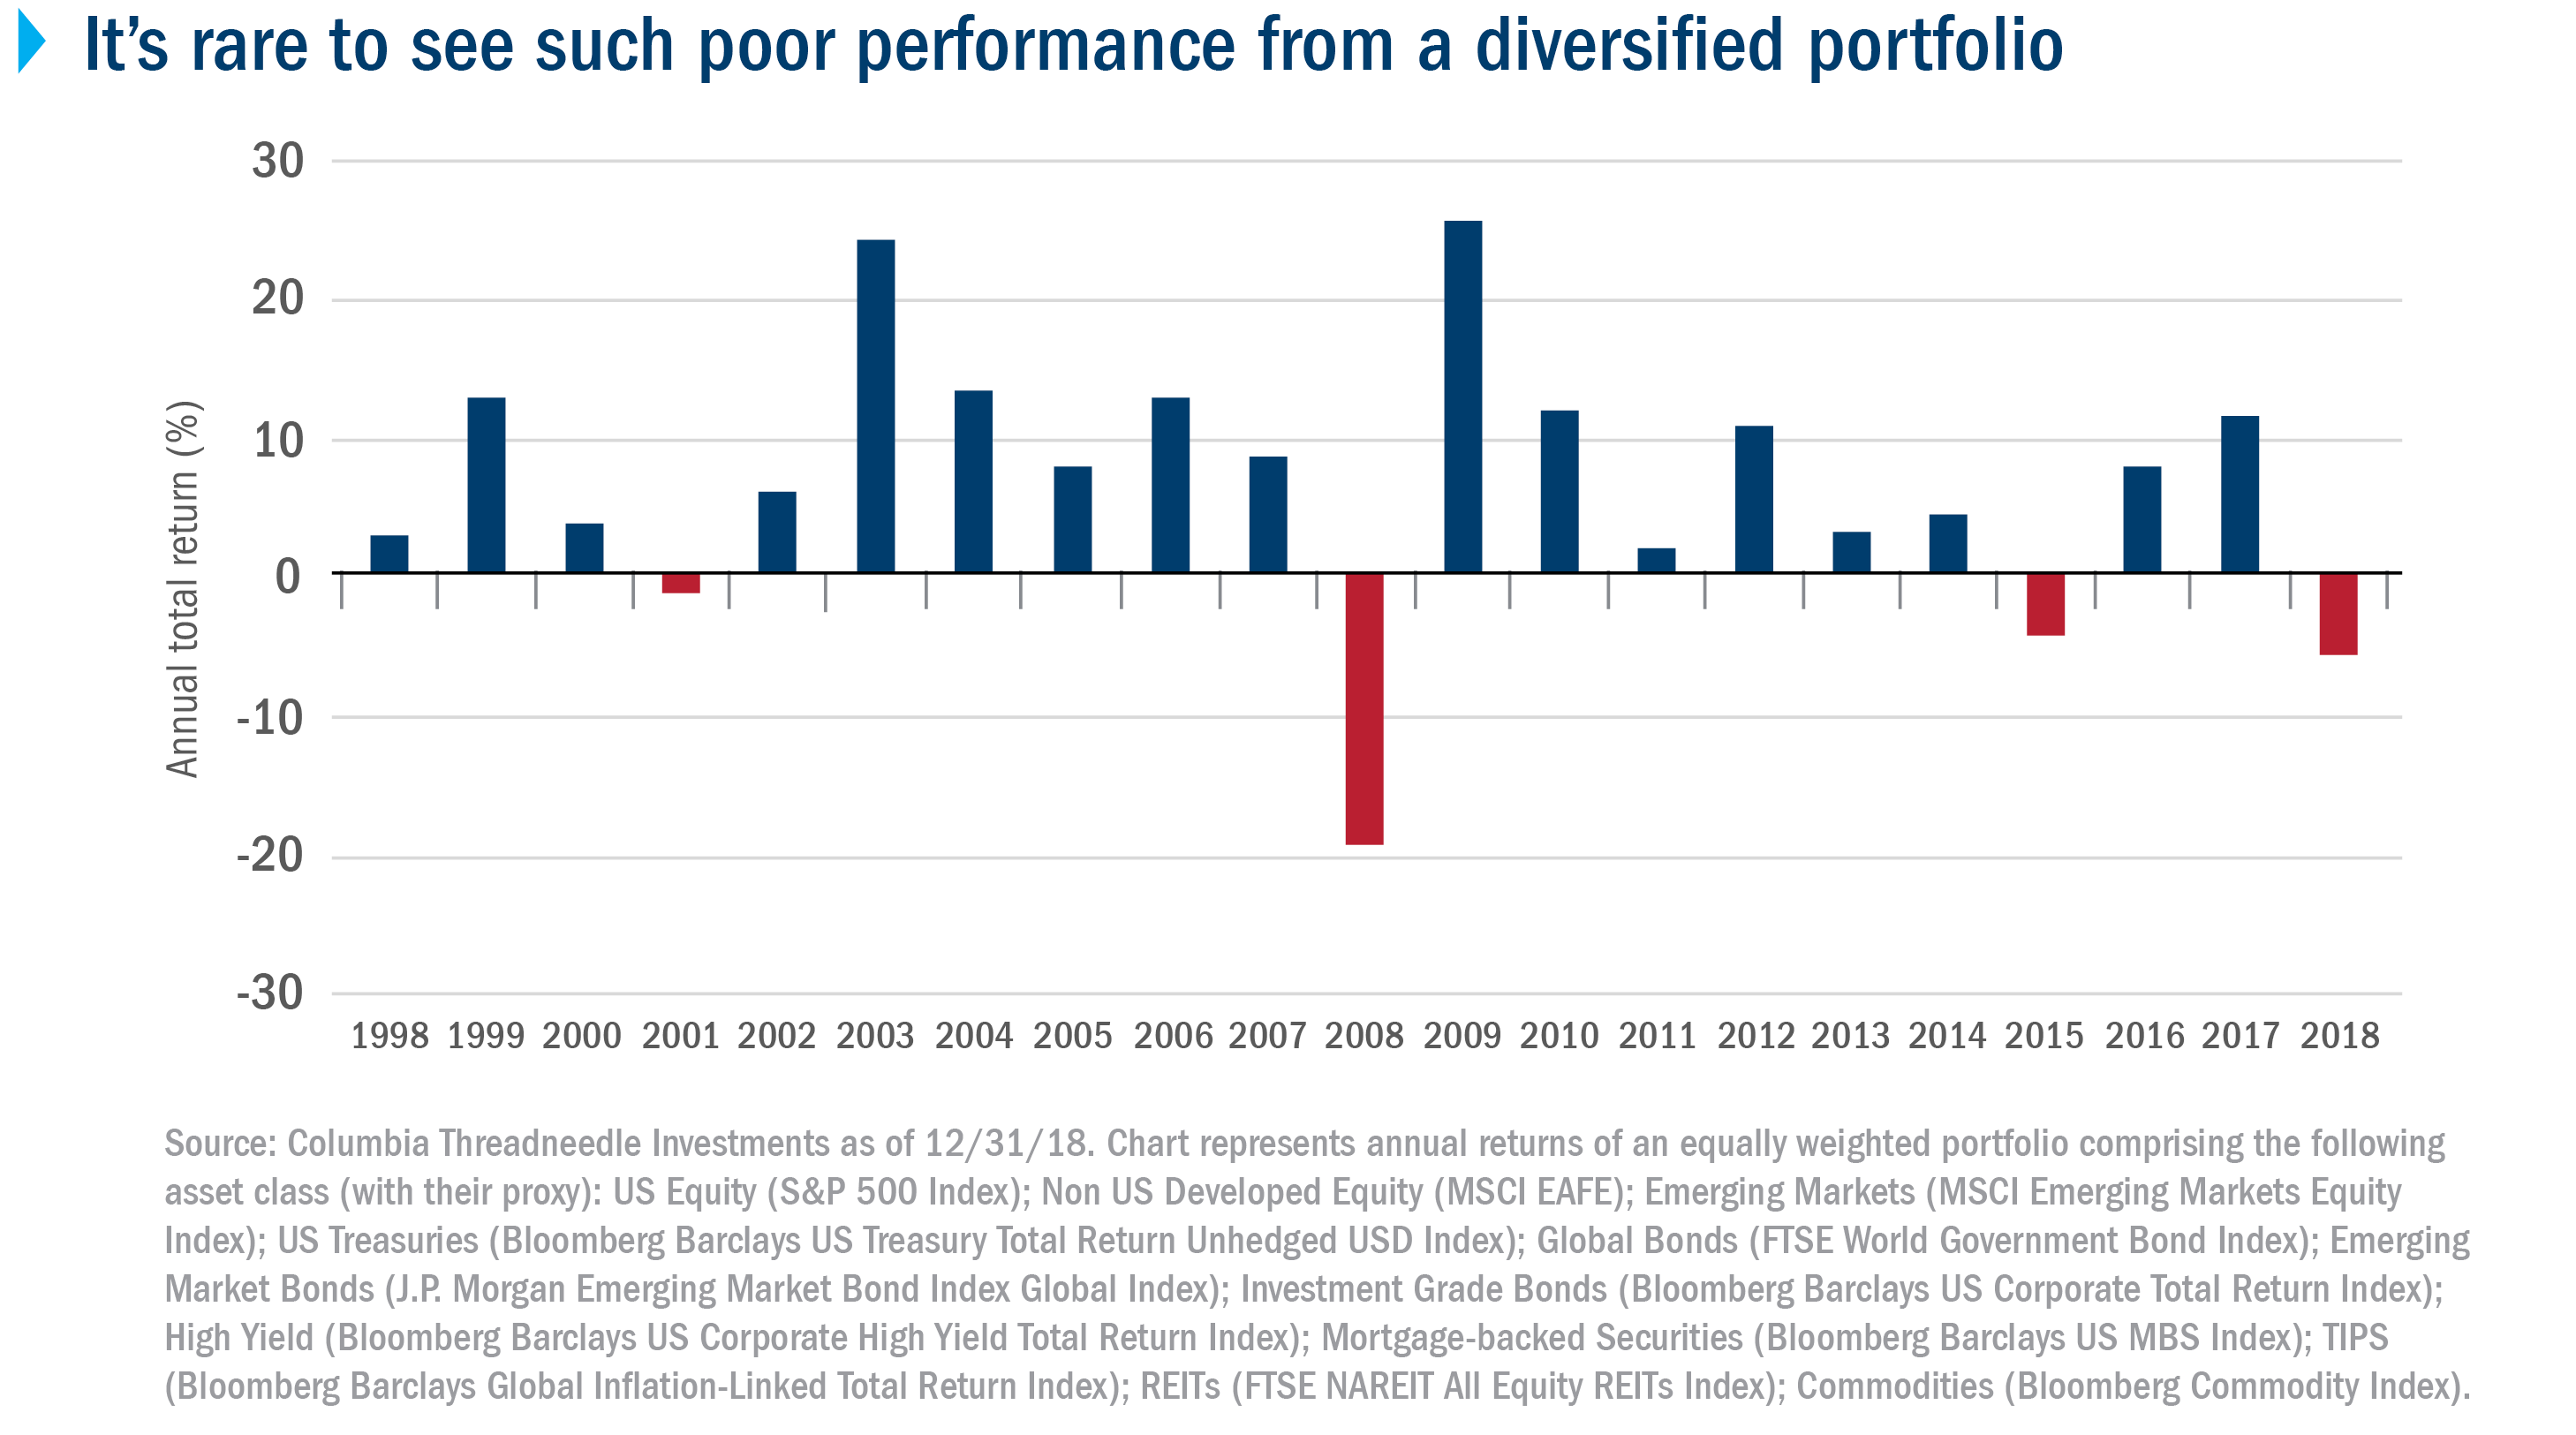 It's rare to see such poor performance from a diversified portfolio